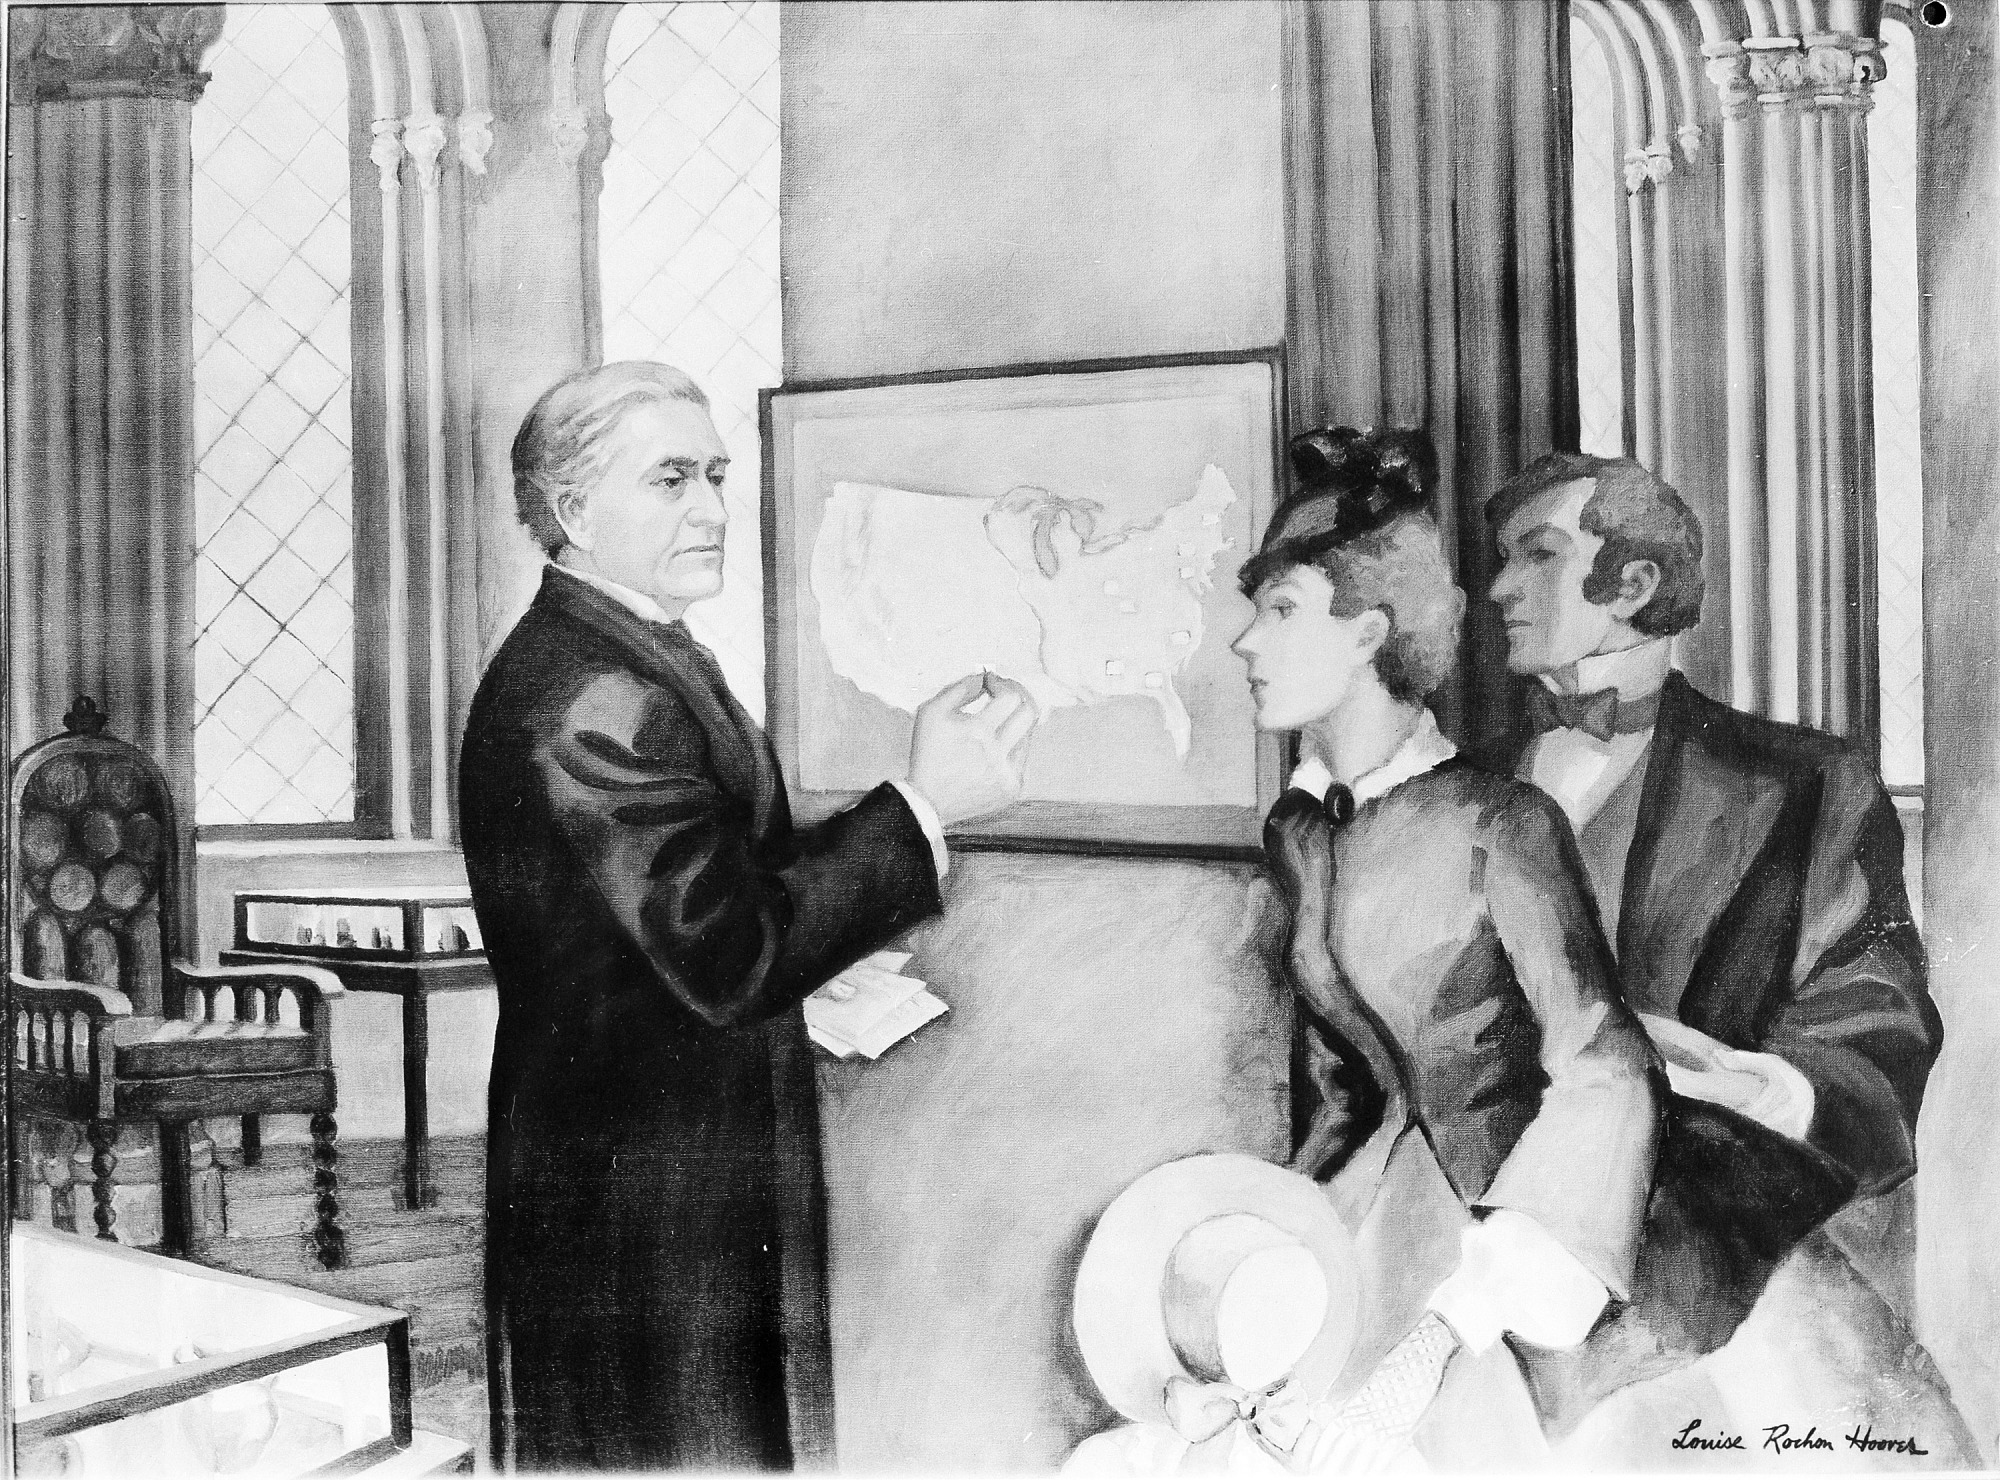 Daily Weather Map Displayed at Smithsonian, 1858, Smithsonian Archives - History Div.